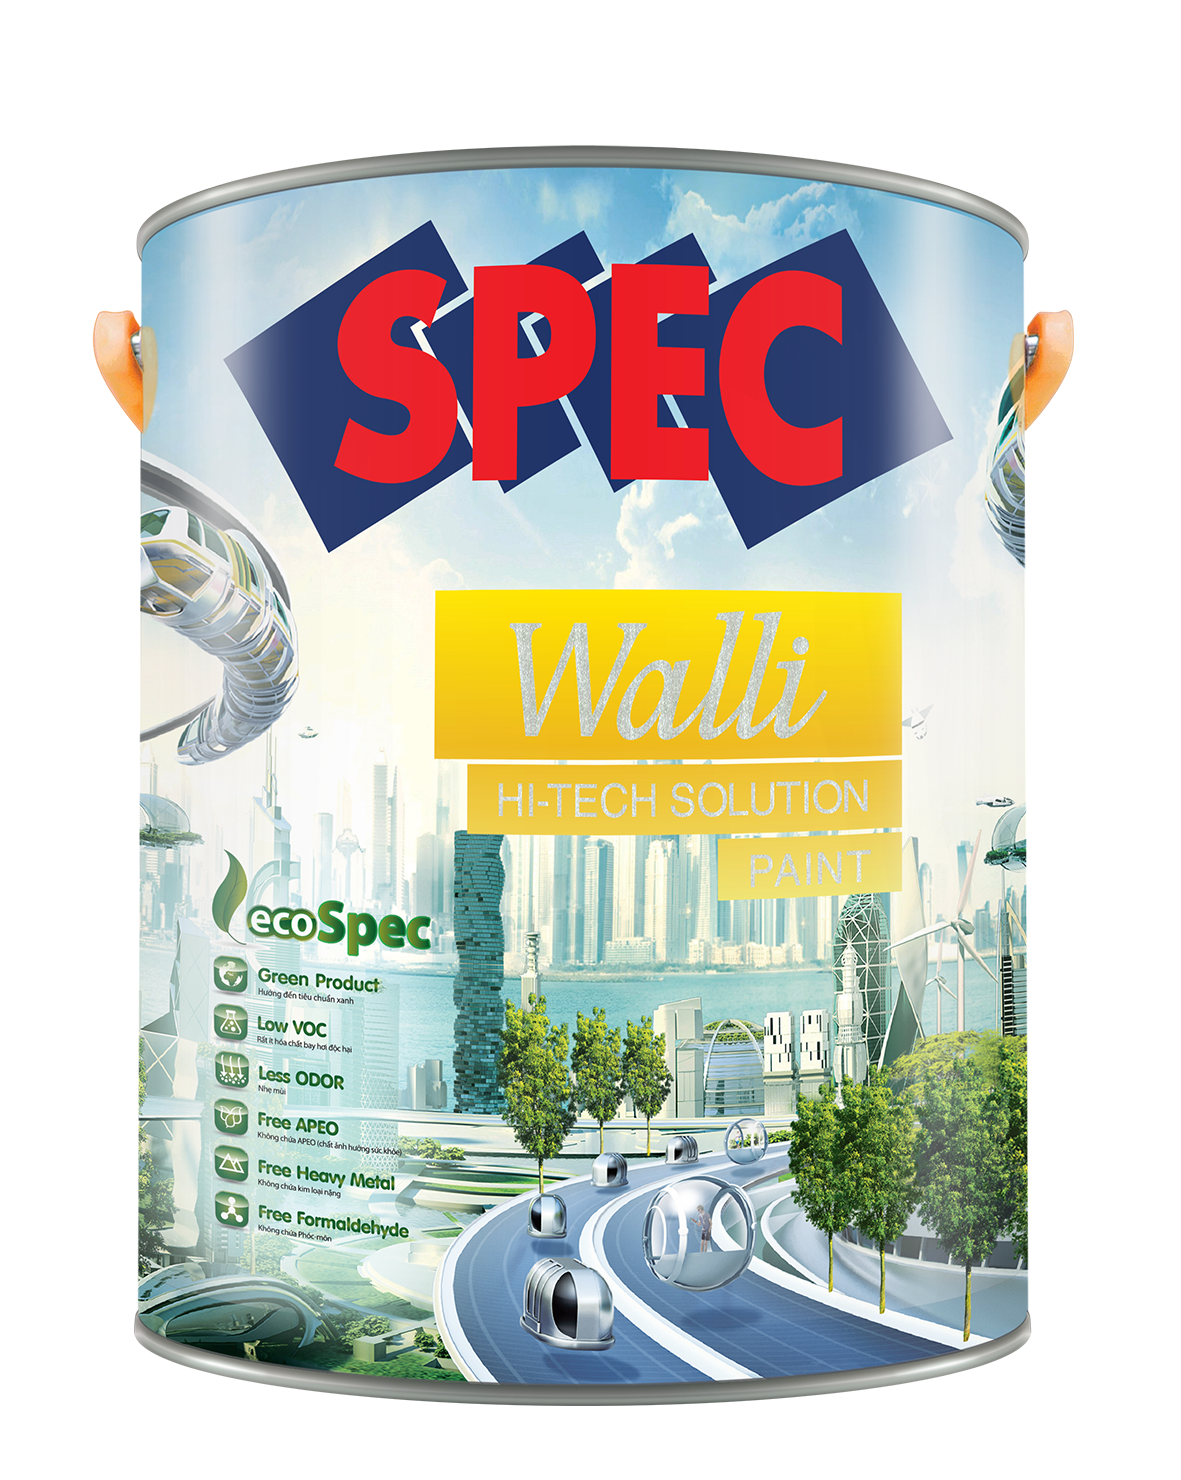 SPEC WALLI HI - TECH SOLUTION PAINT